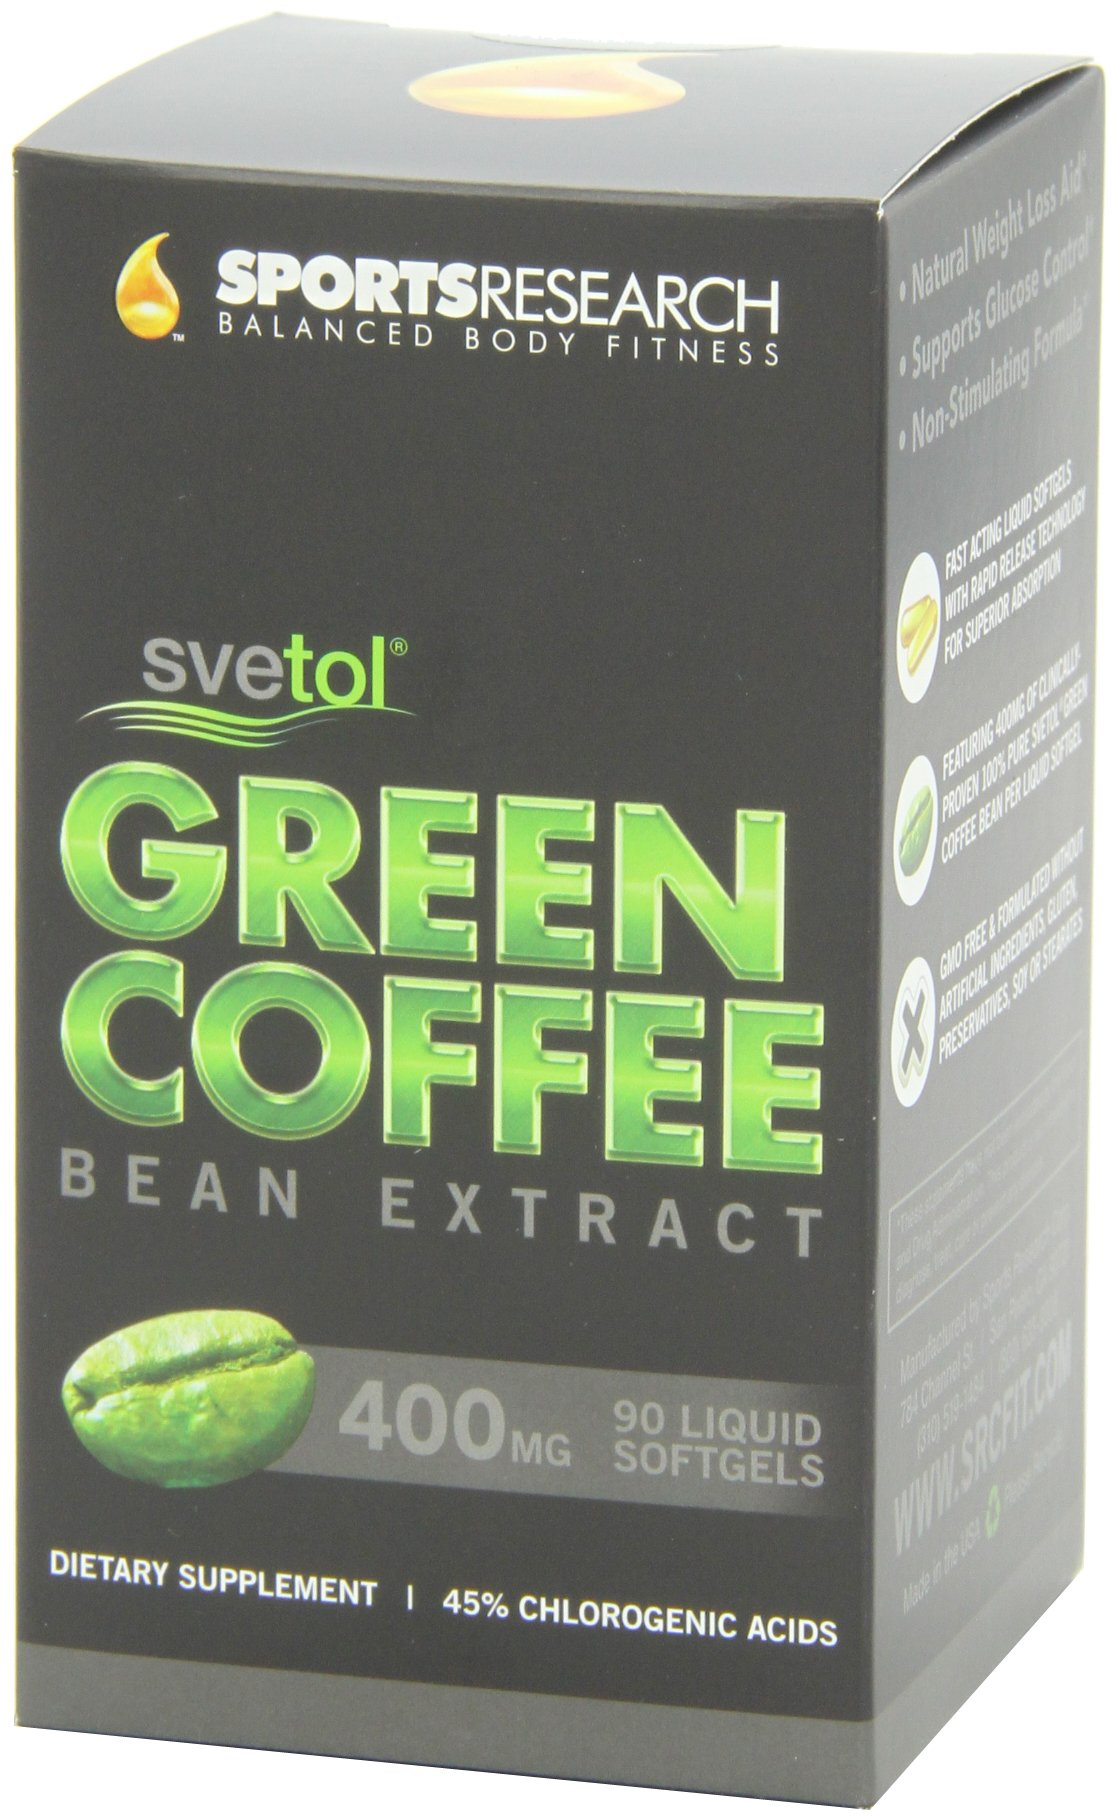 SVETOL Green Coffee Bean Extract, 90 Liquid Softgels with 400mg of Clinically-Proven Svetol Per Cap by Sports Research (Image #12)